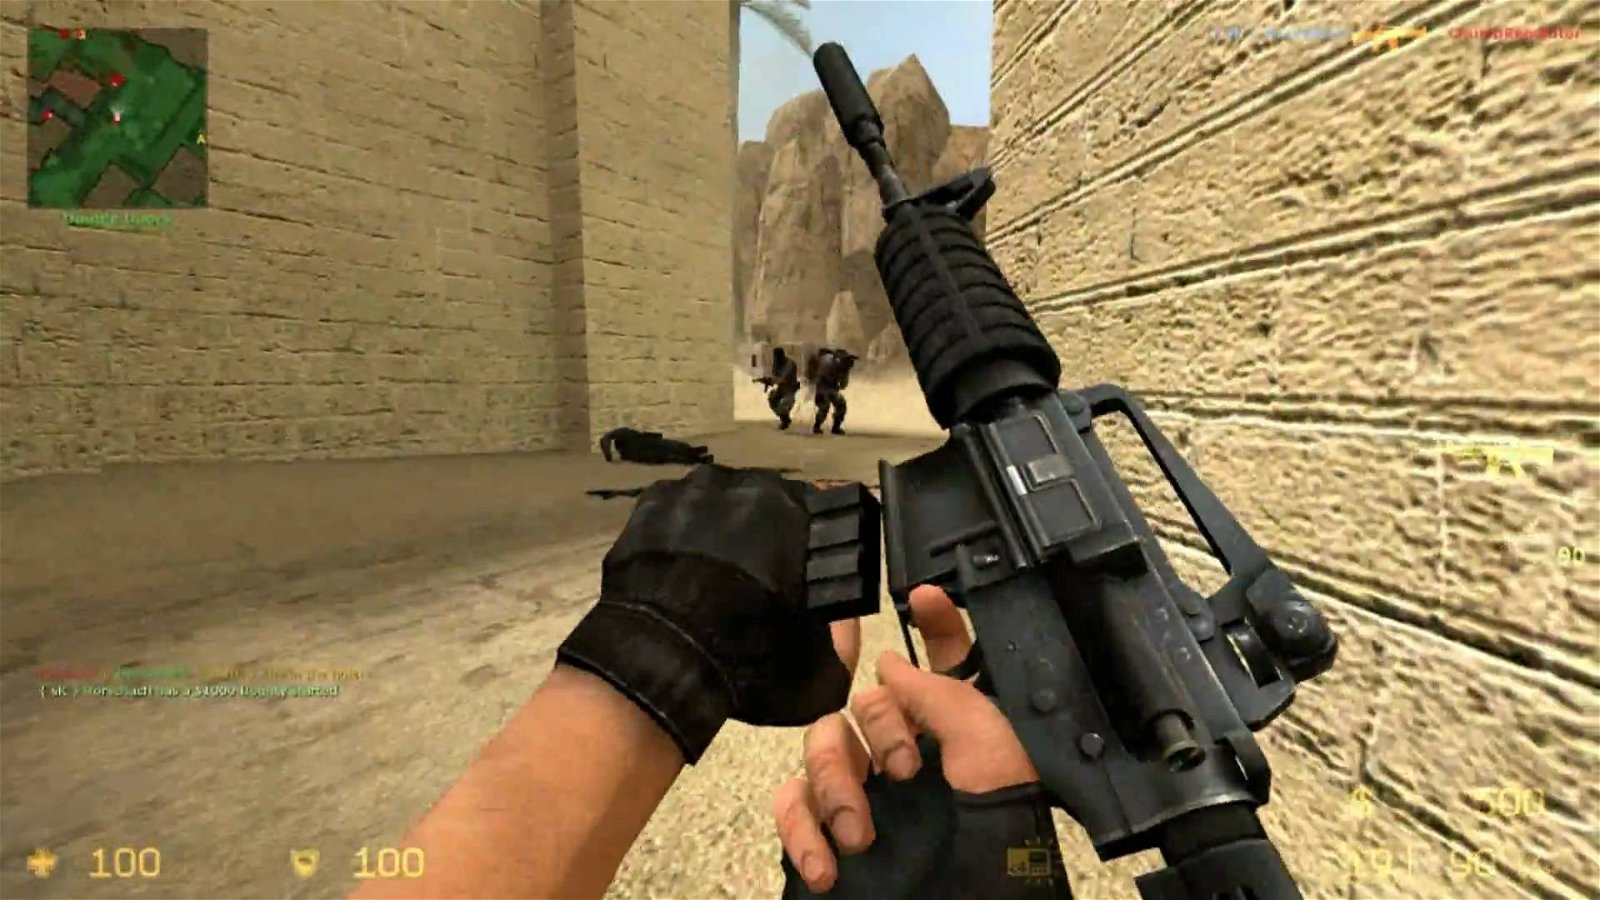 Download counter strike 16 for android apk full installation download counter strike 16 for android apk full installation instructions voltagebd